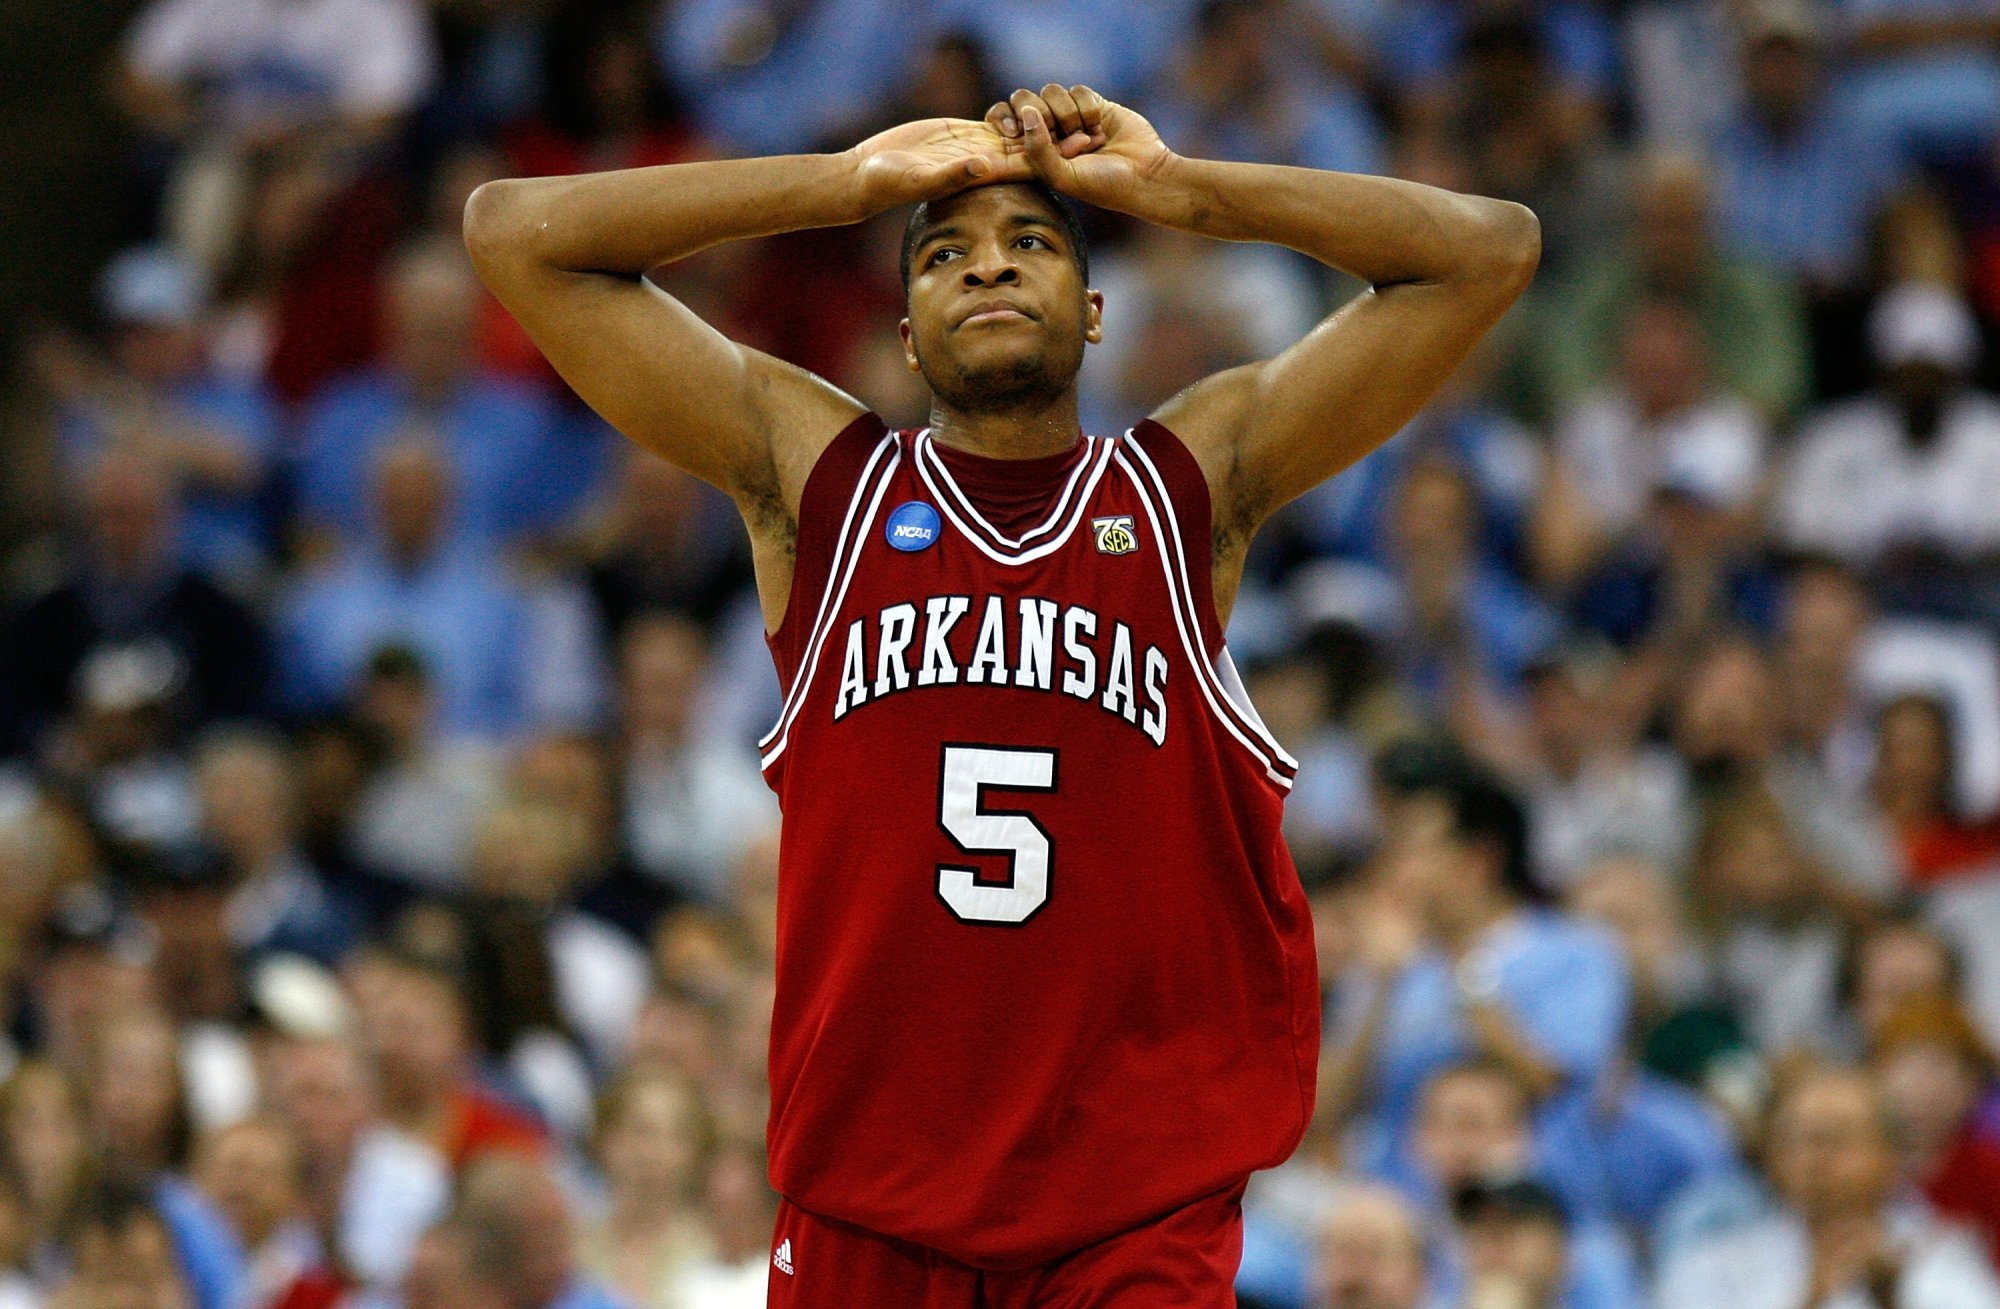 Arkansas' recent woes against North Carolina began in the 2008 tournament, when the Tar Heels rolled the Razorbacks 108-77 in the second round.